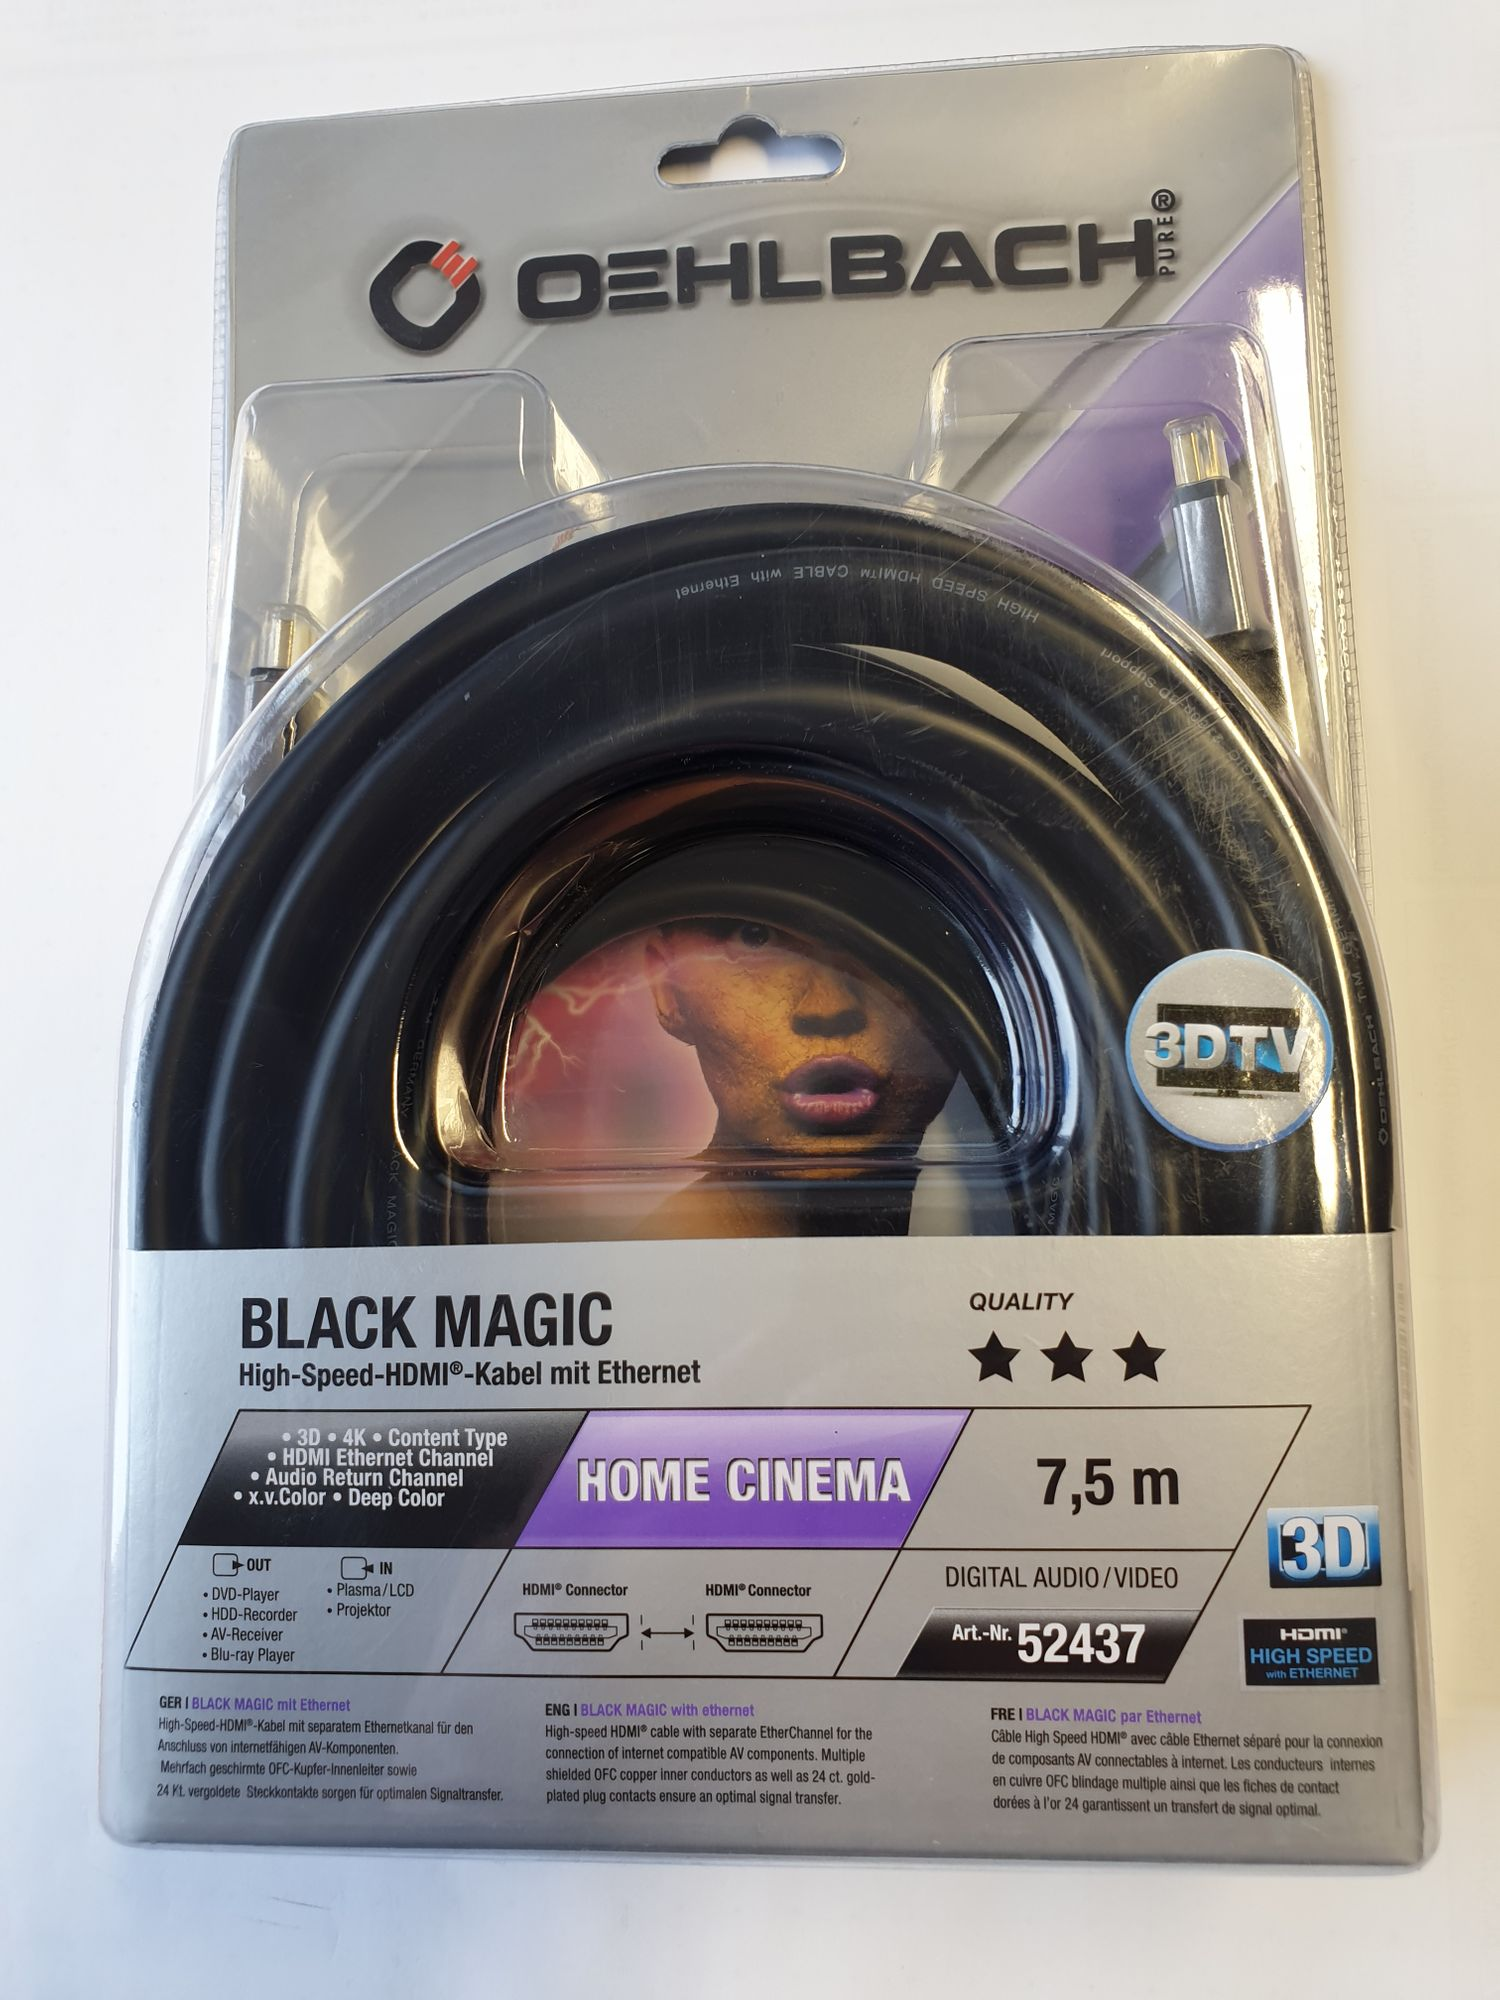 Oehlbach Black Magic HDMI Kabel 7,5 m mit Ethernet schwarz